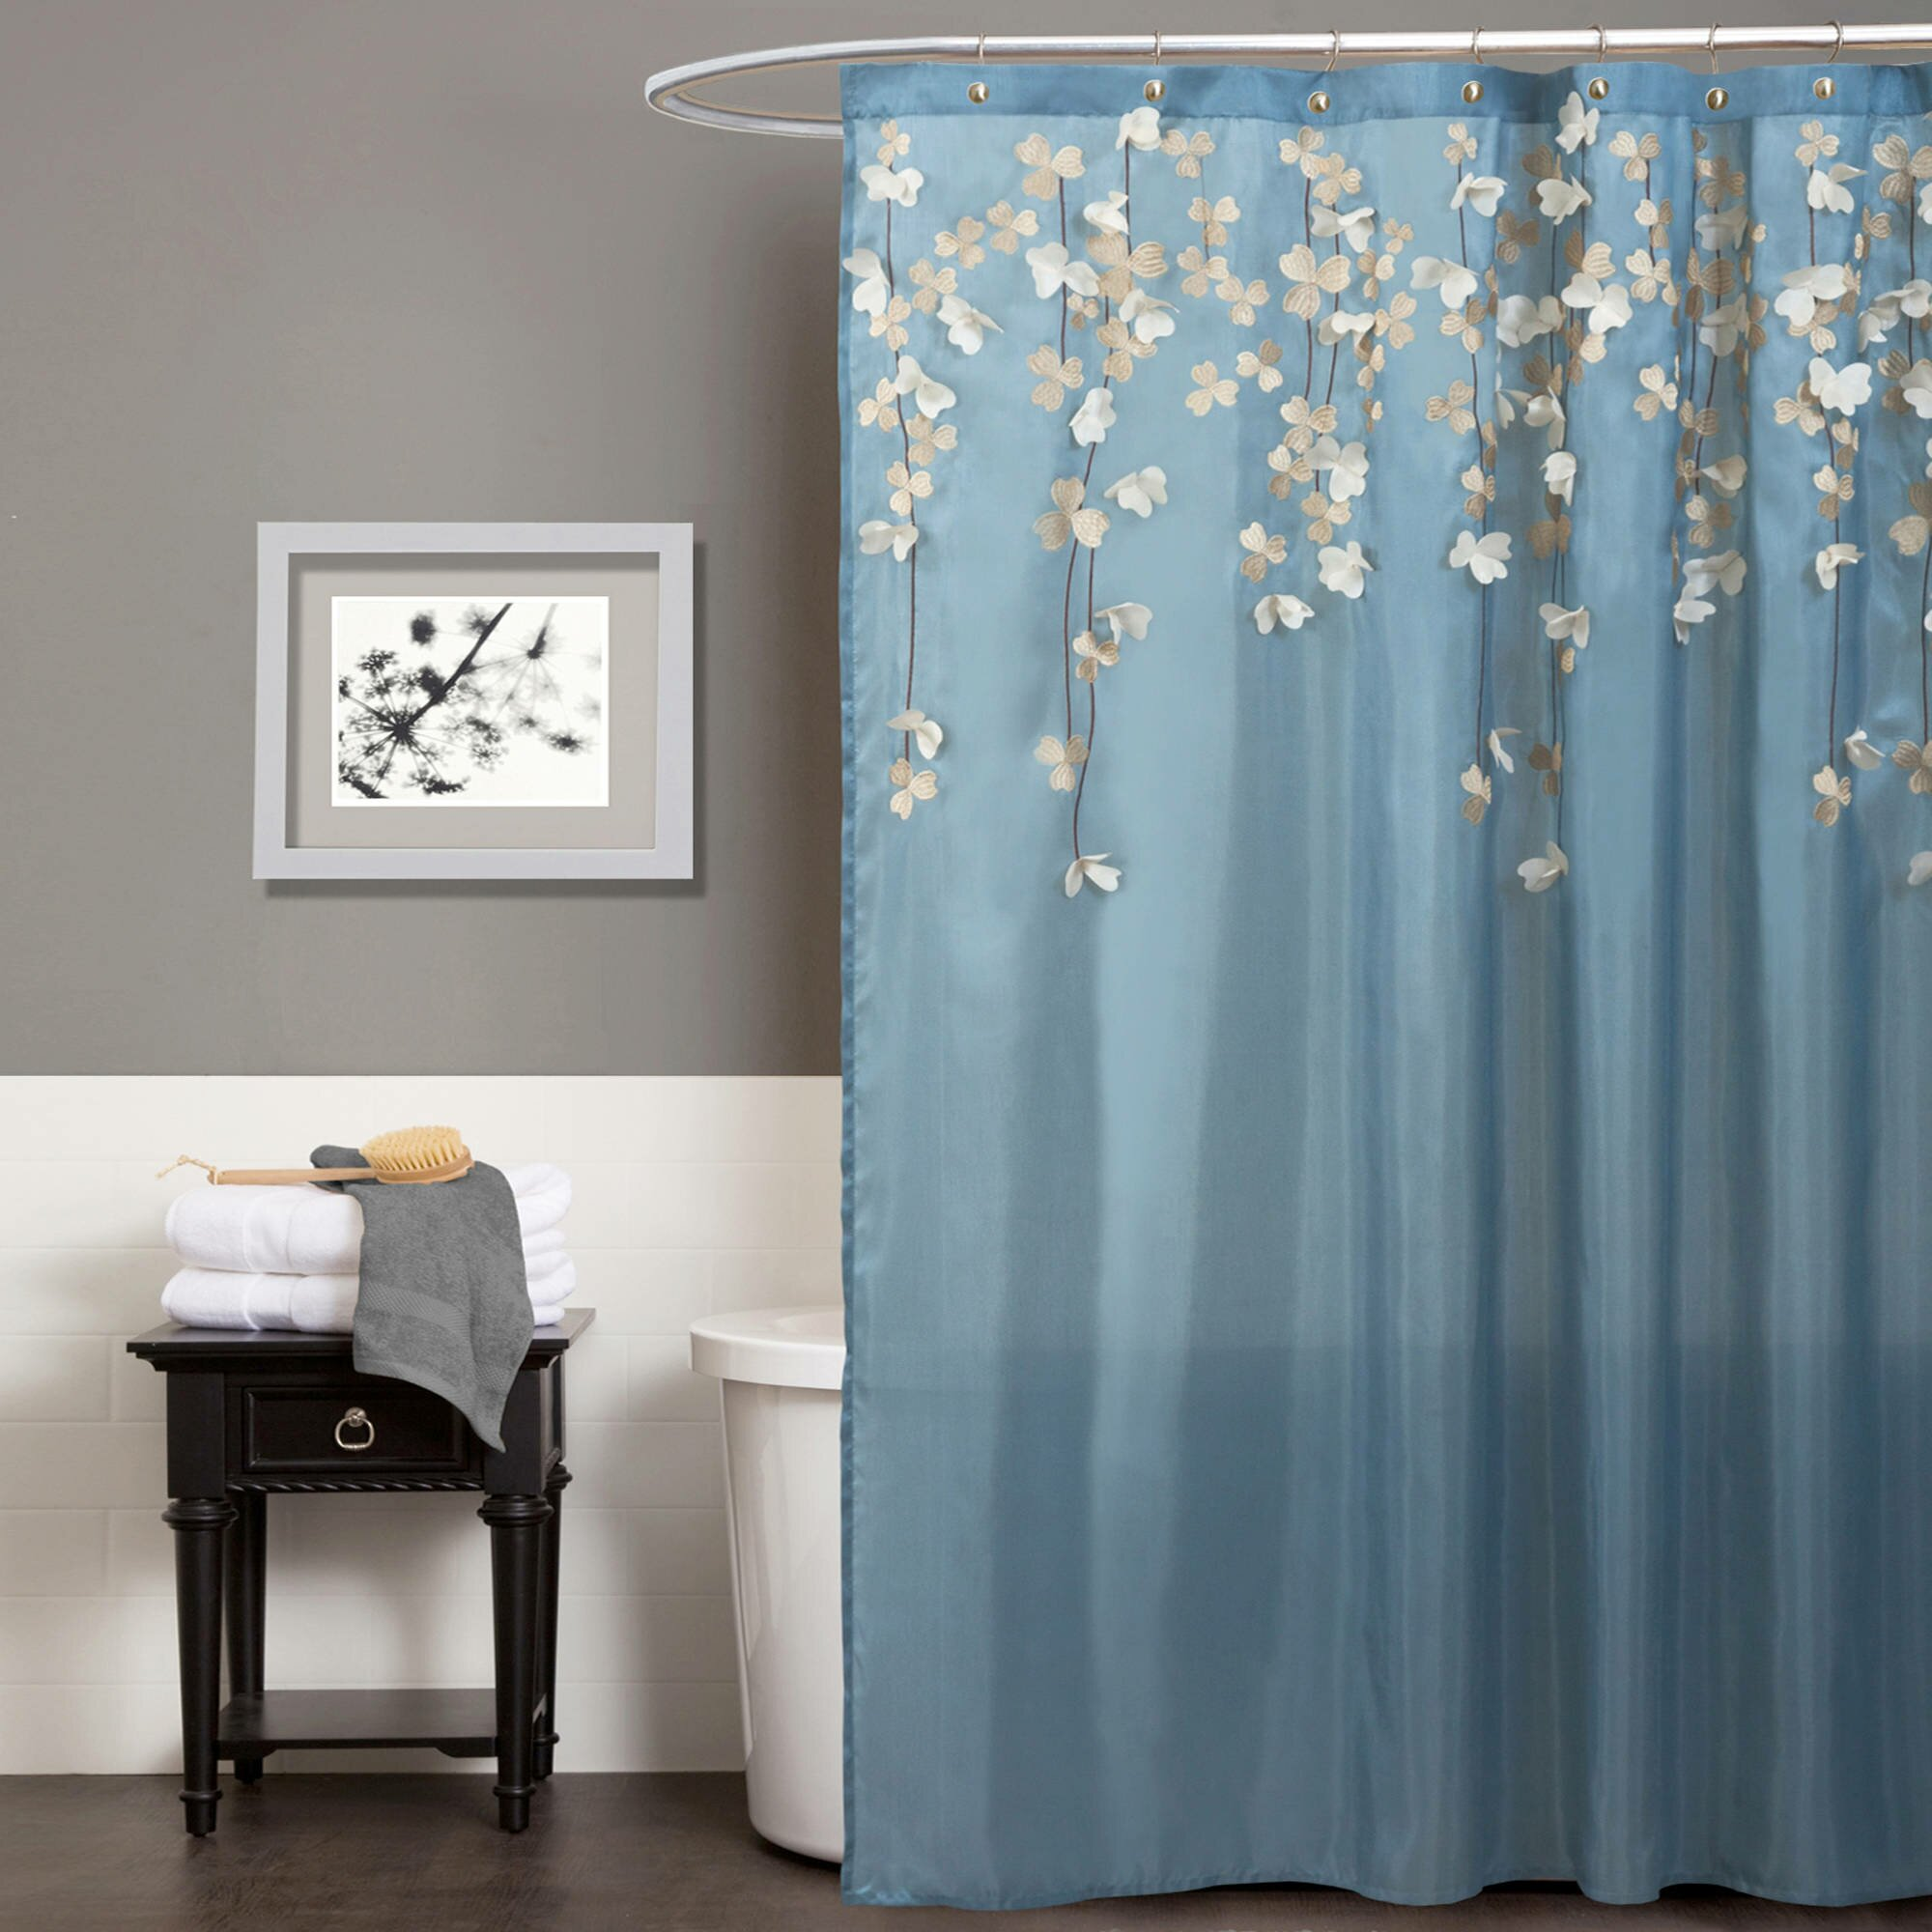 Walmart Shower Curtain for Cute Your Bathroom Decor Ideas: Walmart Shower Curtain | Wal Mart Shower Curtains | Discount Fabric Shower Curtains